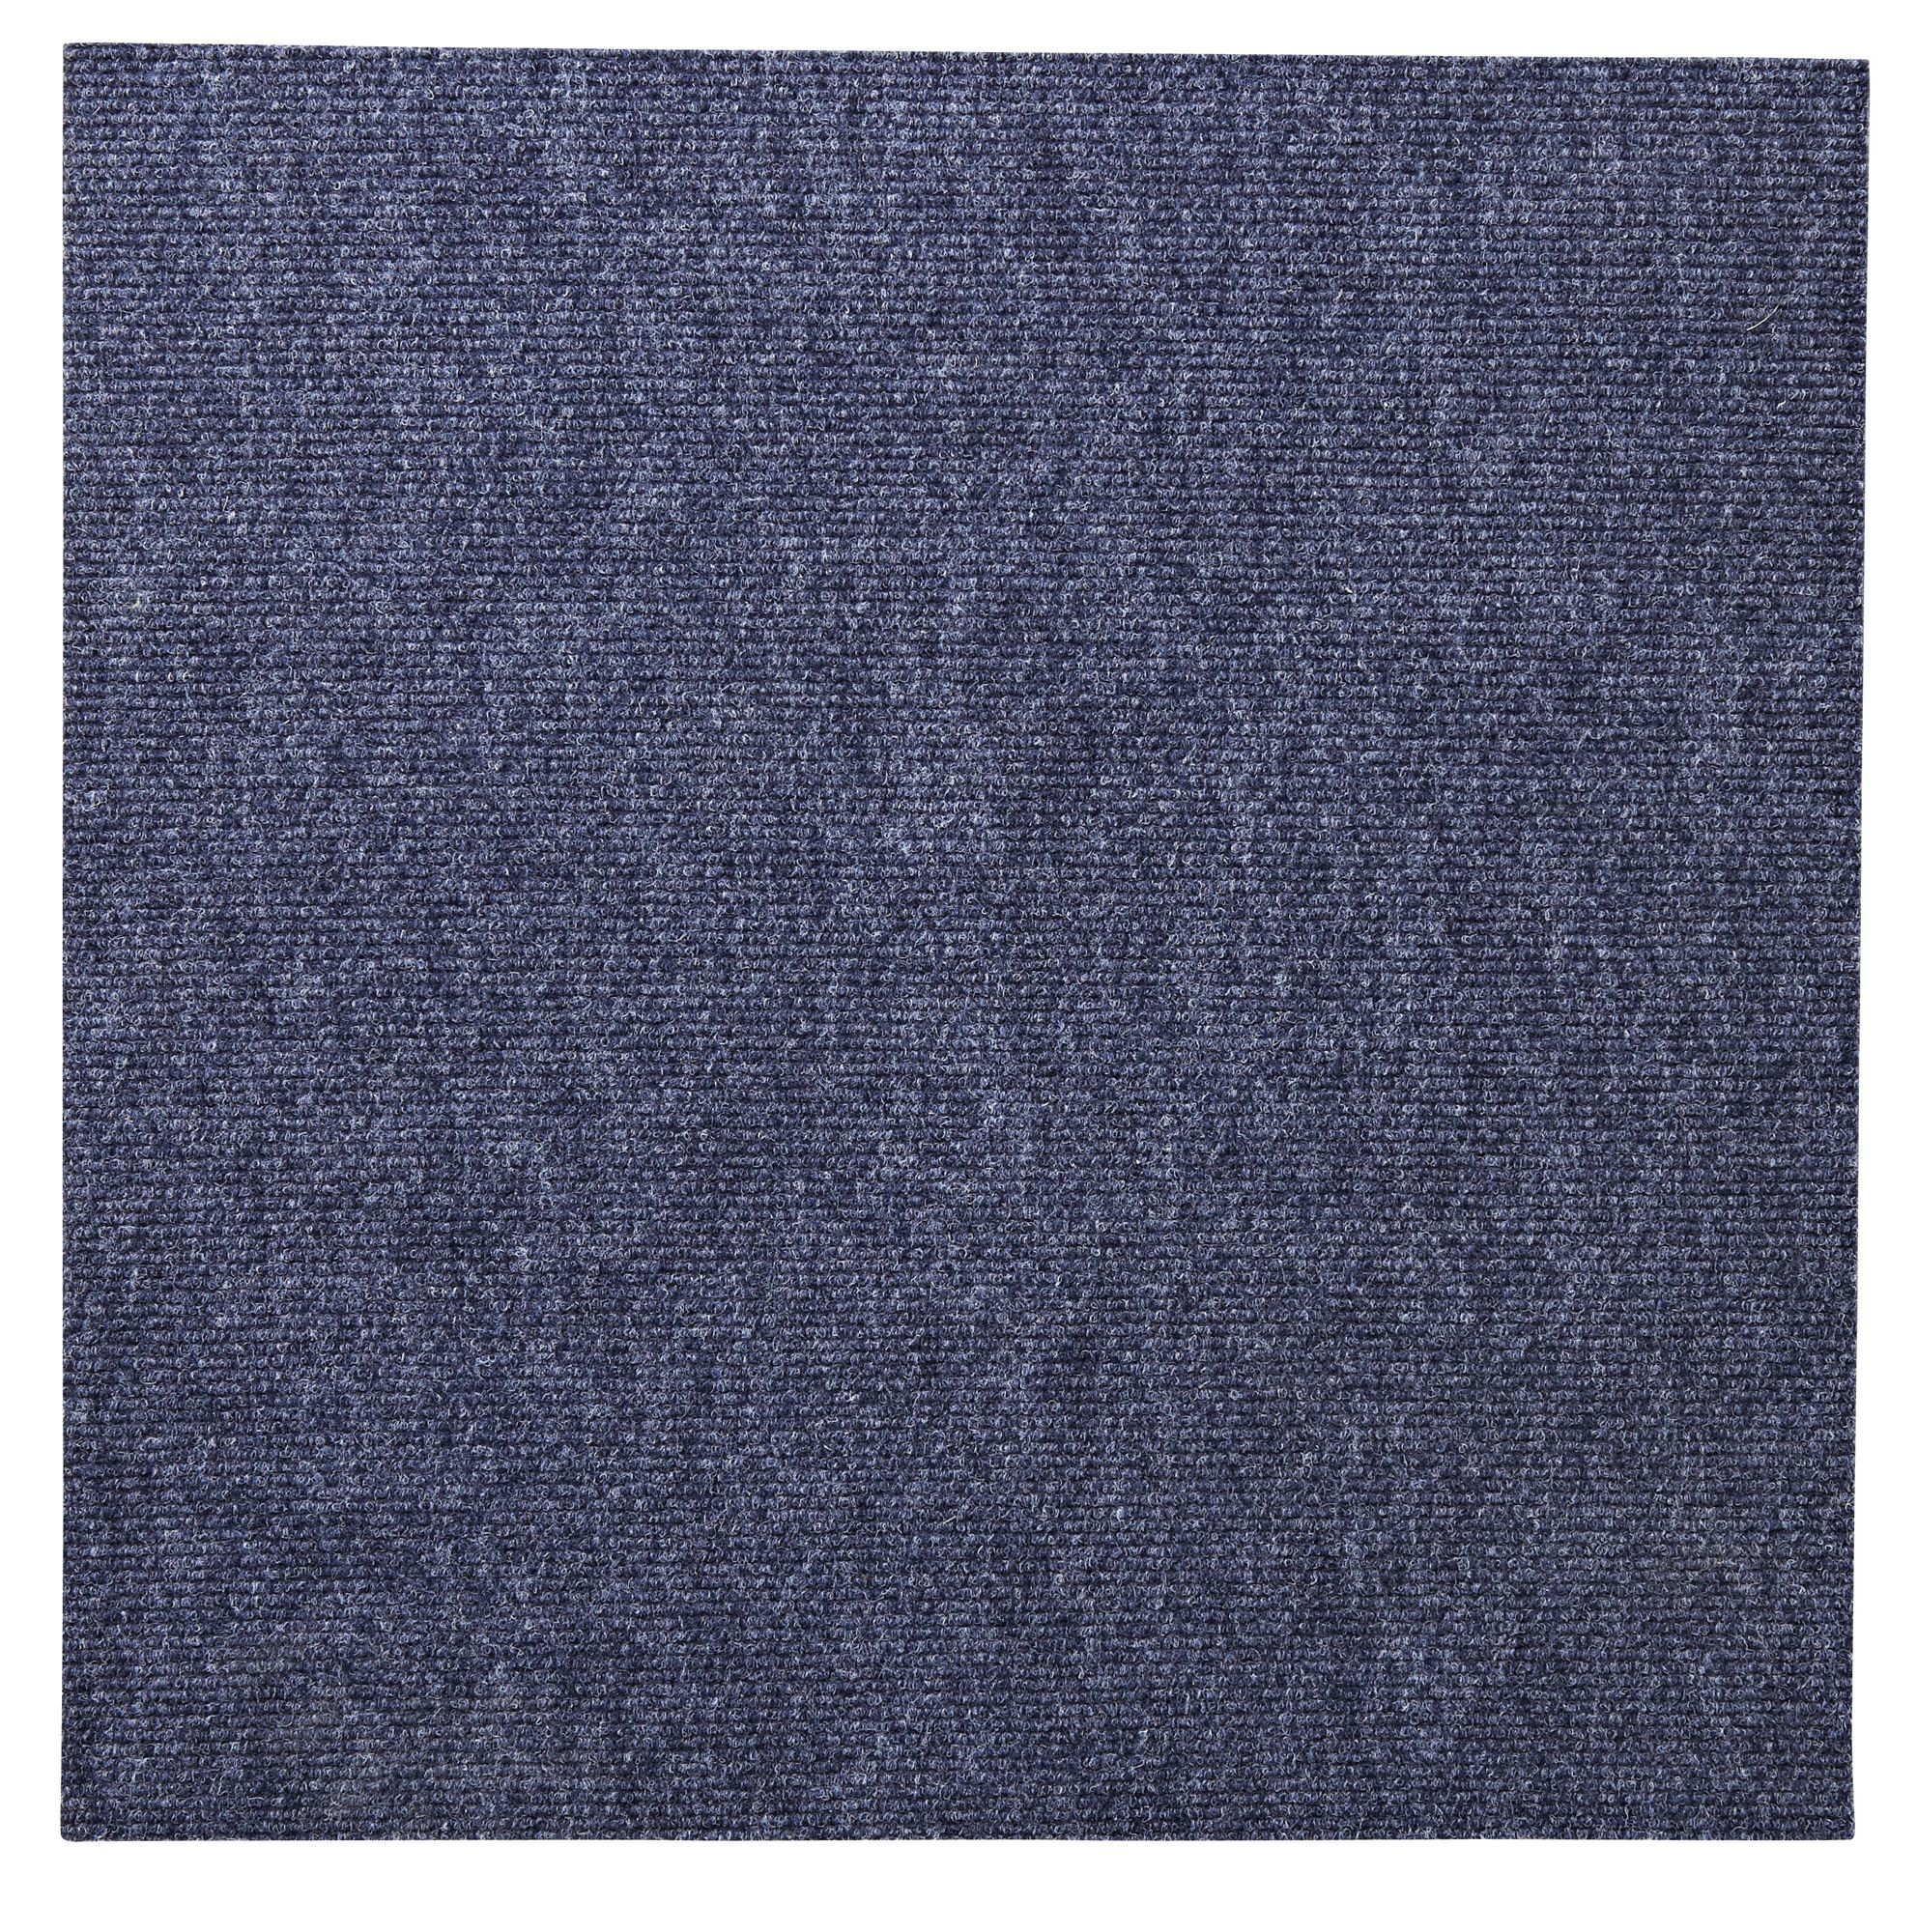 B Amp Q Blue Carpet Tile Pack Of 10 Departments Tradepoint